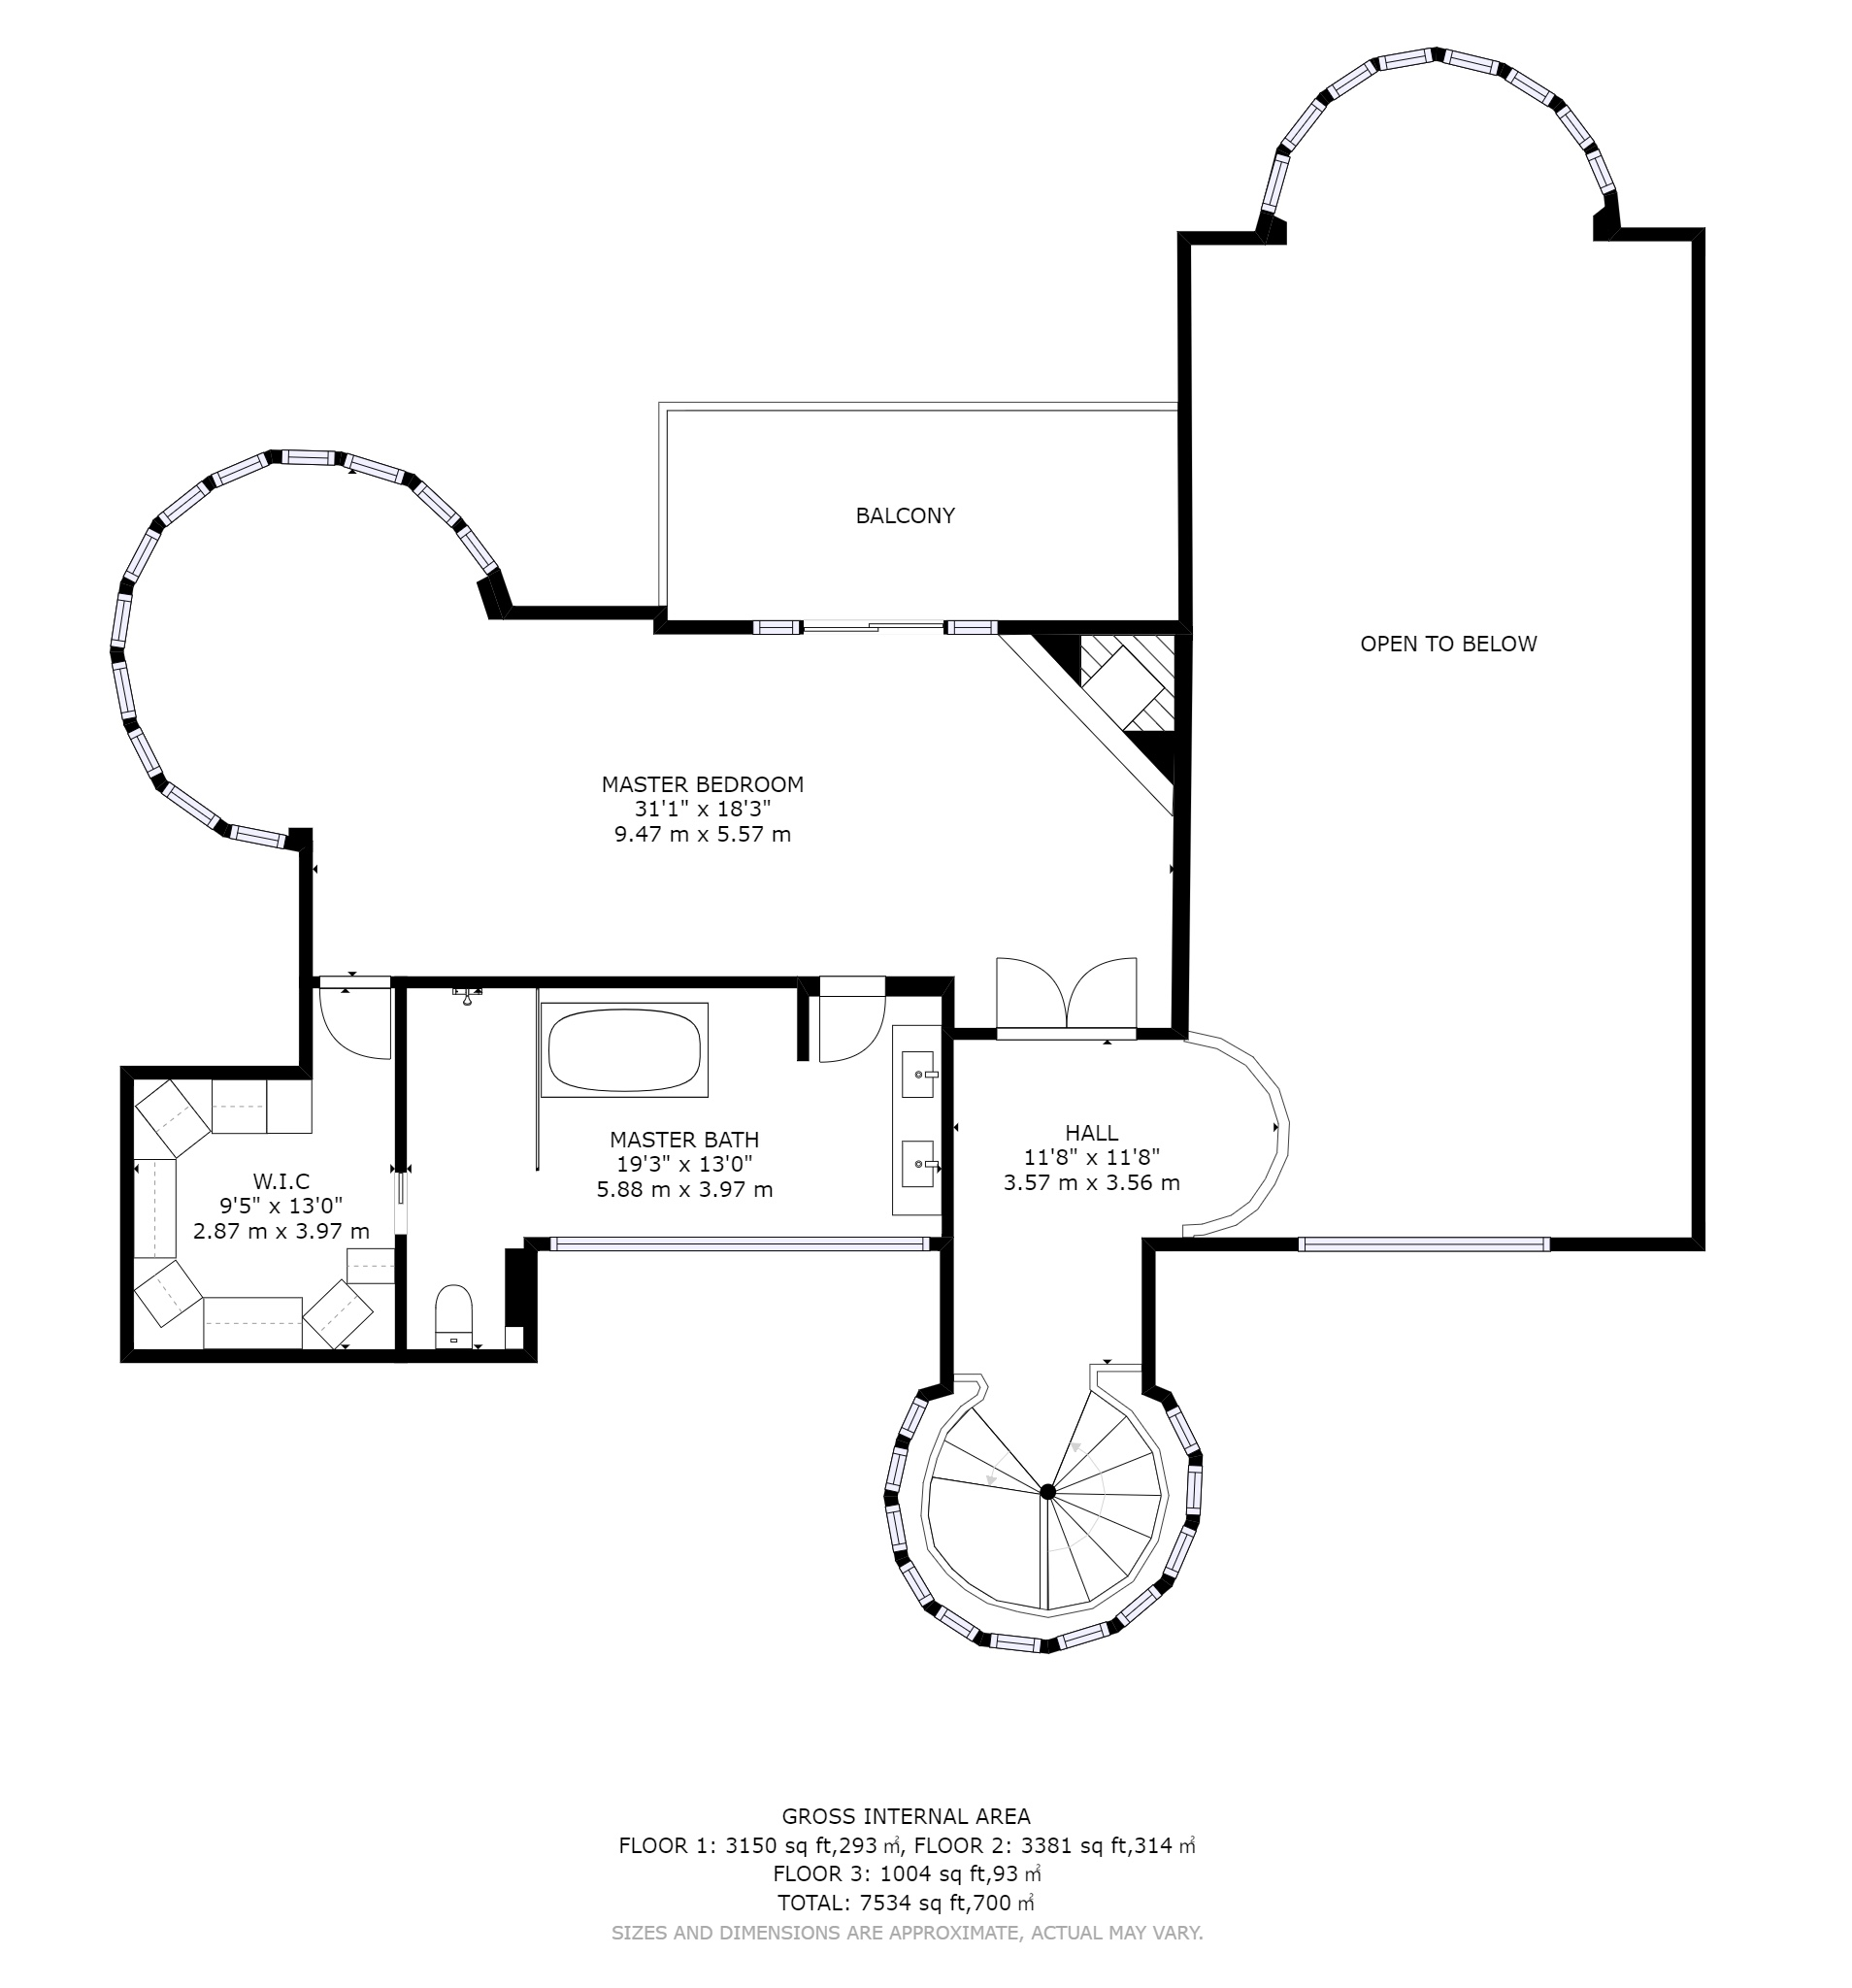 hight resolution of each individual floor delivered in png format as a separate file all floors together delivered in one pdf up to 10 000 square feet floor plan